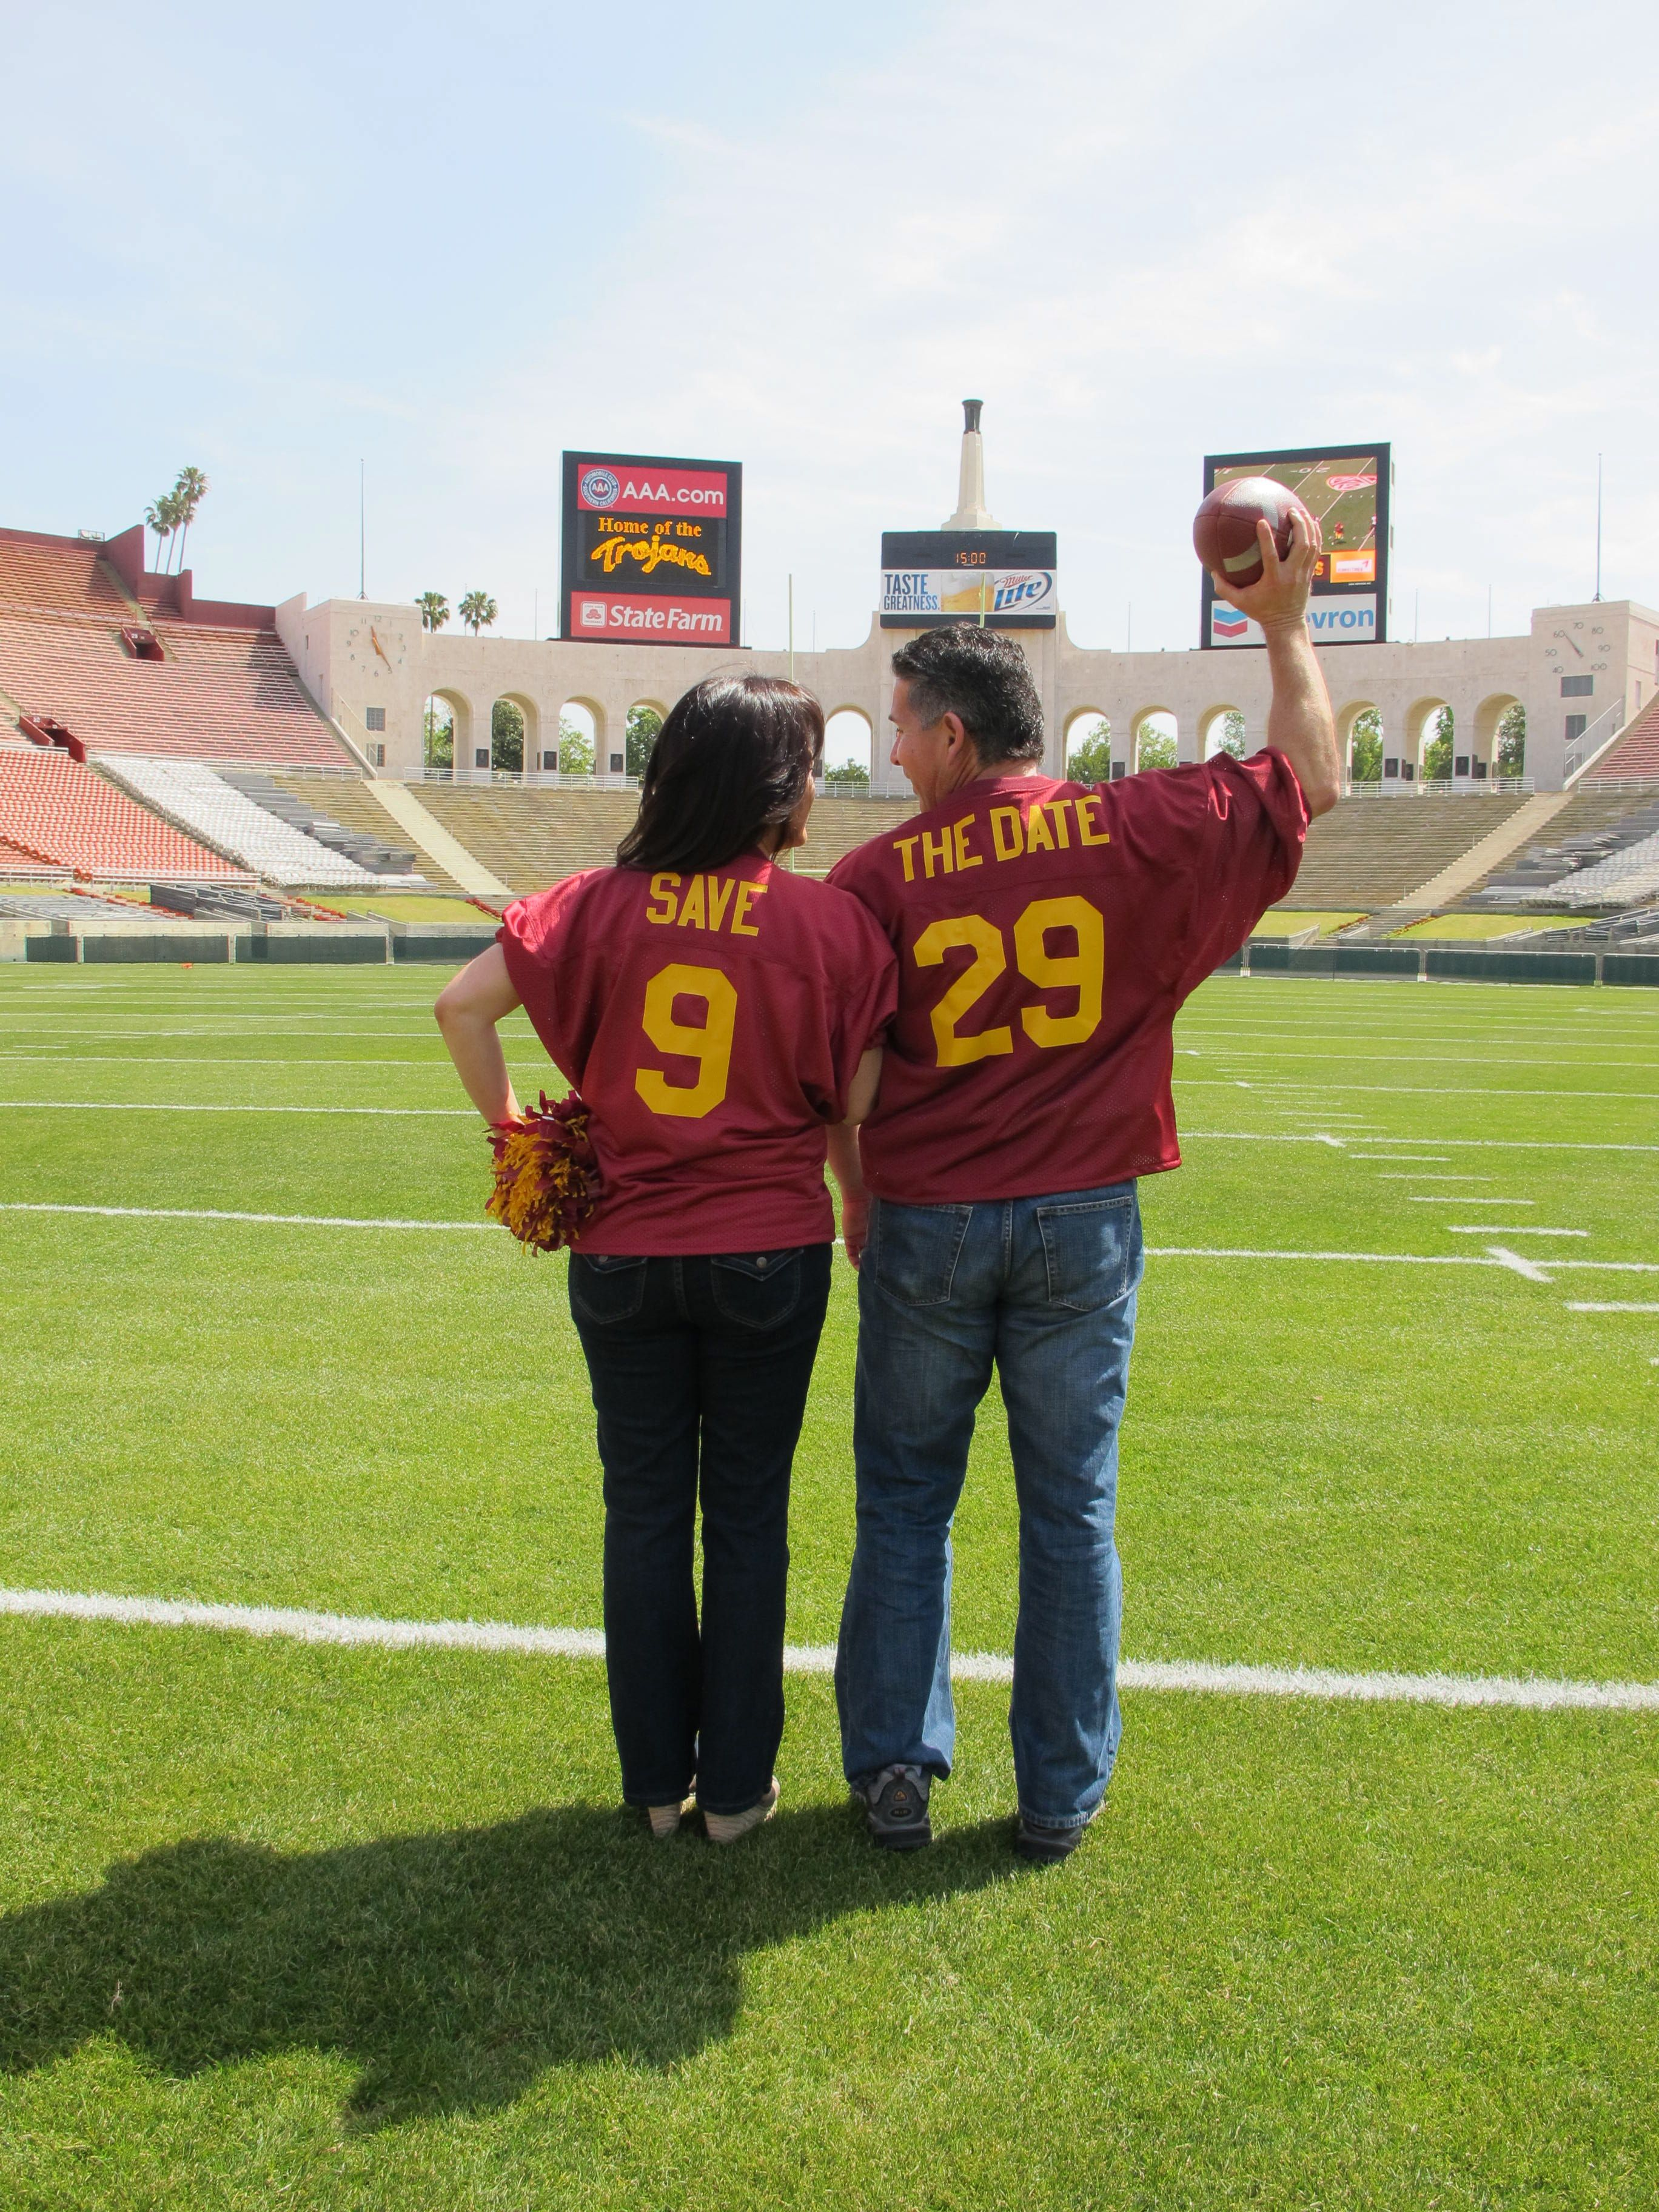 Save The Date Photo Taken In The La Coliseum Home Of Our Trojans Wedding Scheduled On A Trojan Bye Of Course Fairytale Wedding Save The Date Usc